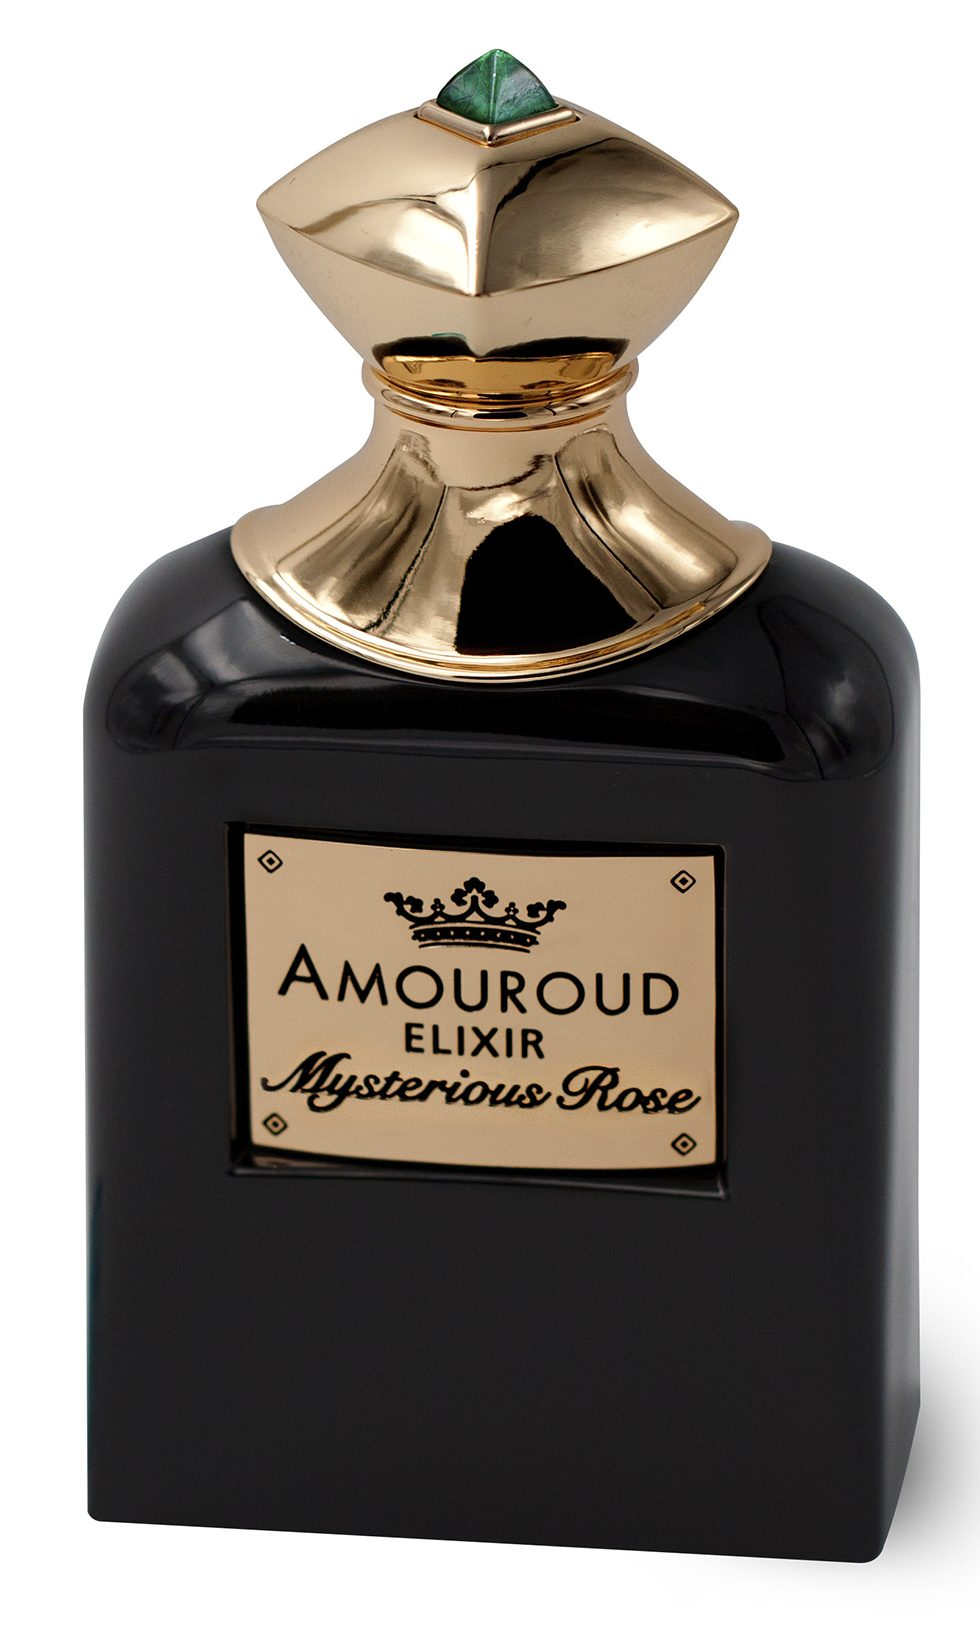 AMOUROUD_ELIXIR_MYSTERIOUS_ROSE.